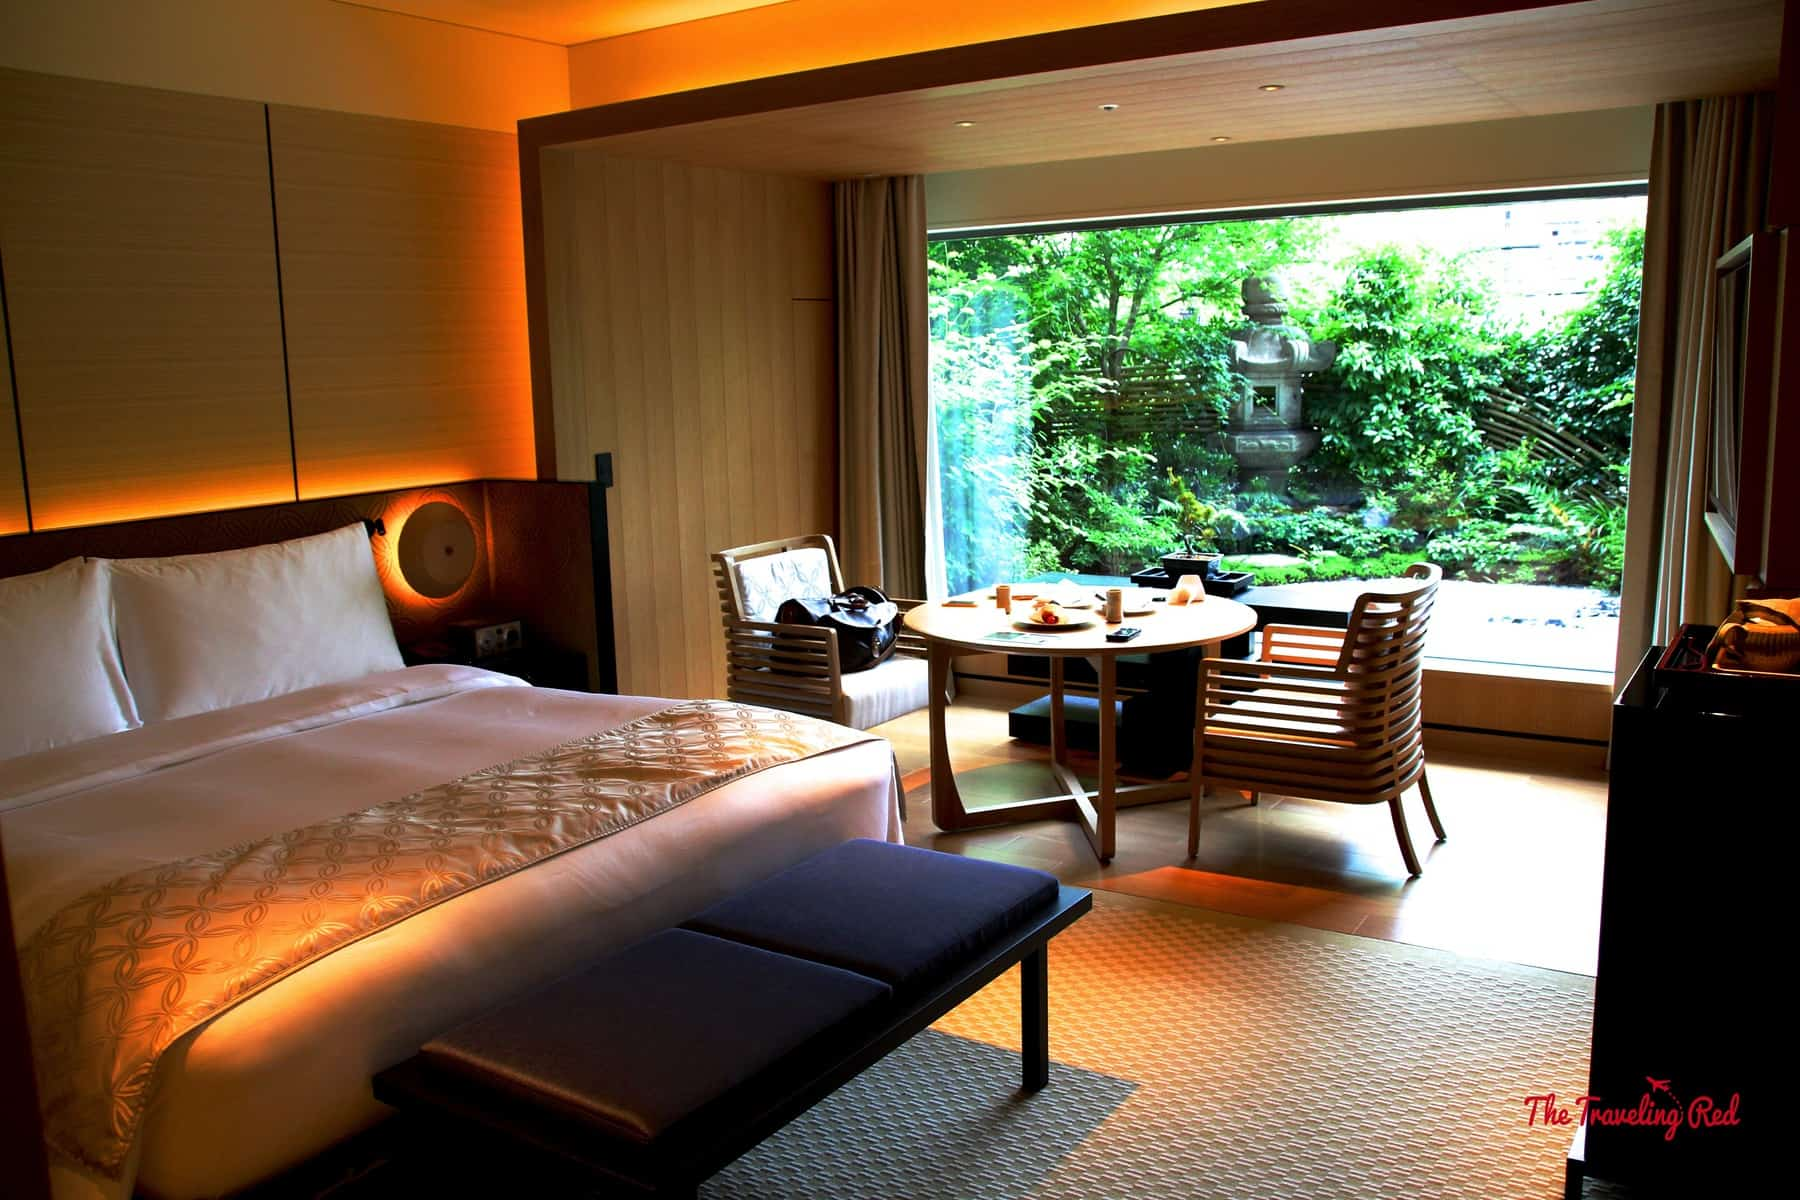 Ritz Carlton Kyoto is the place to stay in Kyoto. Perfectly located in the center of the city, with all the luxuries of a Ritz mixed with Japanese culture. Must stay when in Japan.